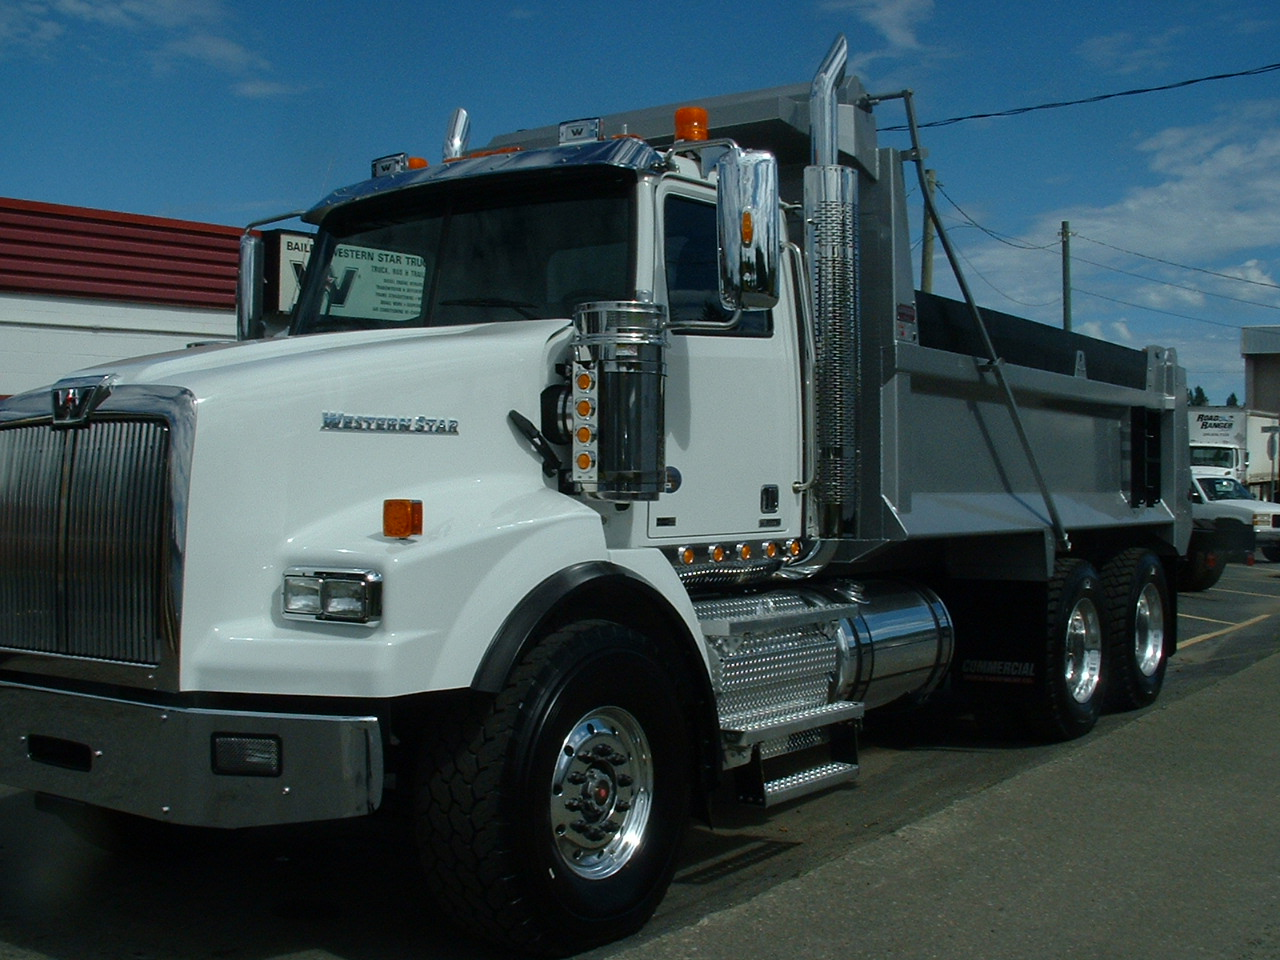 truck paper dump truck Commercial trucks for sale at truckpapercom trailers for sale hundreds of used truck dealers, thousands of trucks for sale your source for freightliner, international trucks, peterbilt, kenworth, mack trucks, dump trucks, used trailers, and much more.